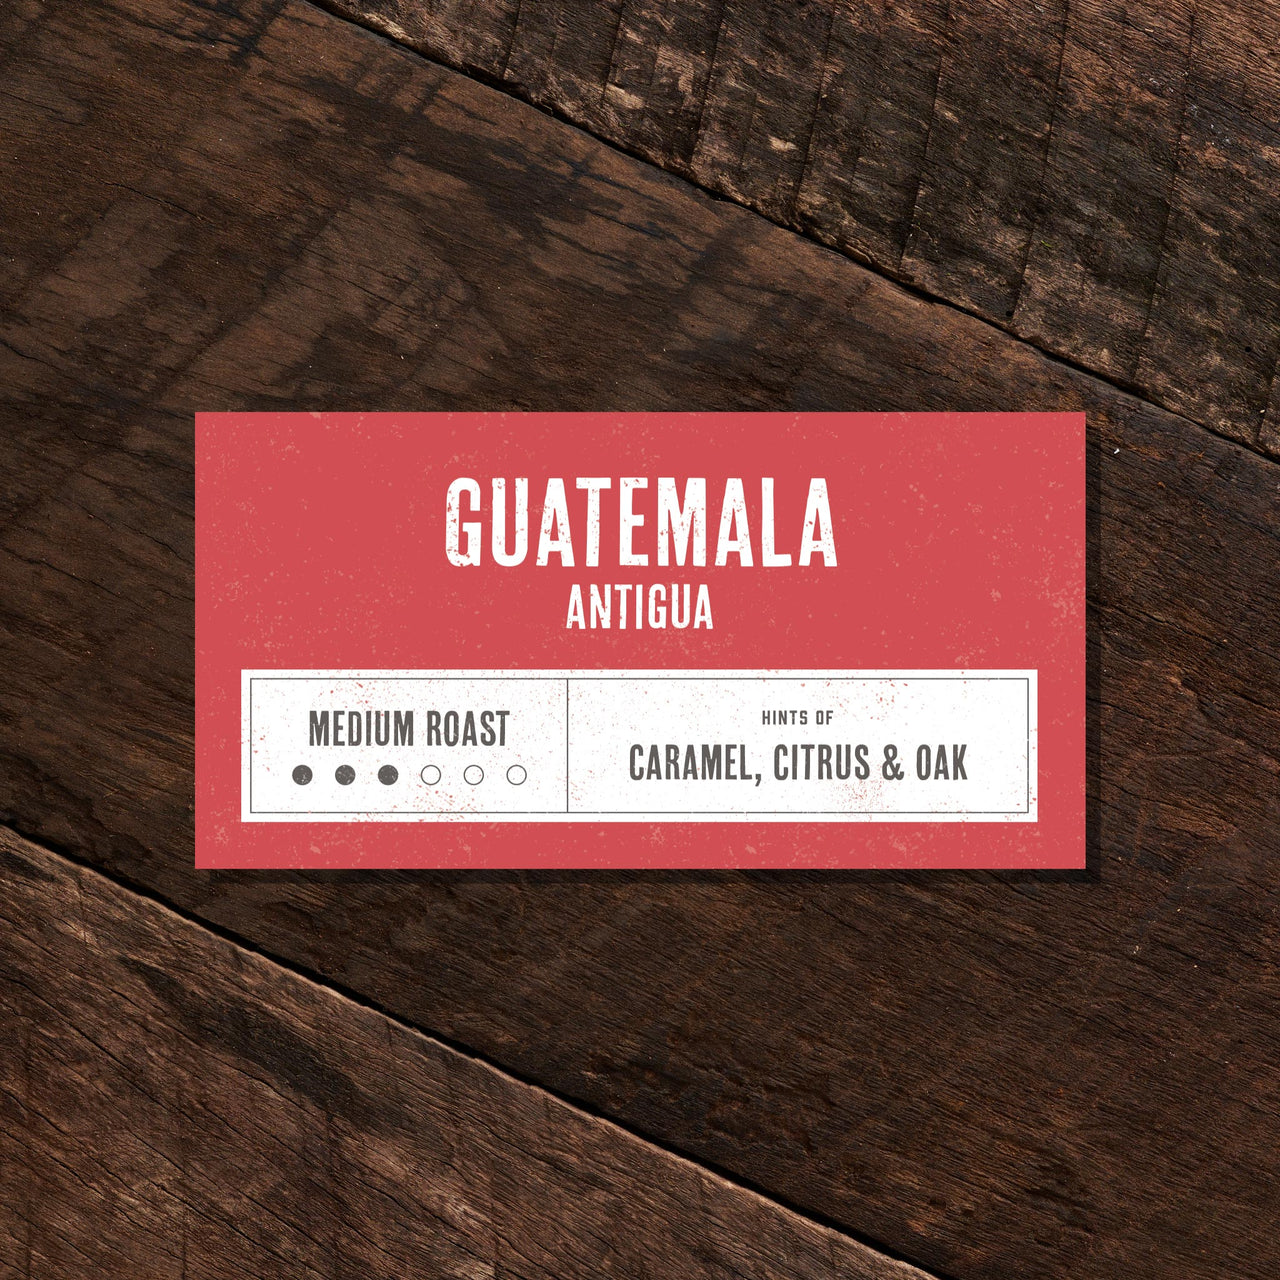 Guatemala Antigua - Medium Roast